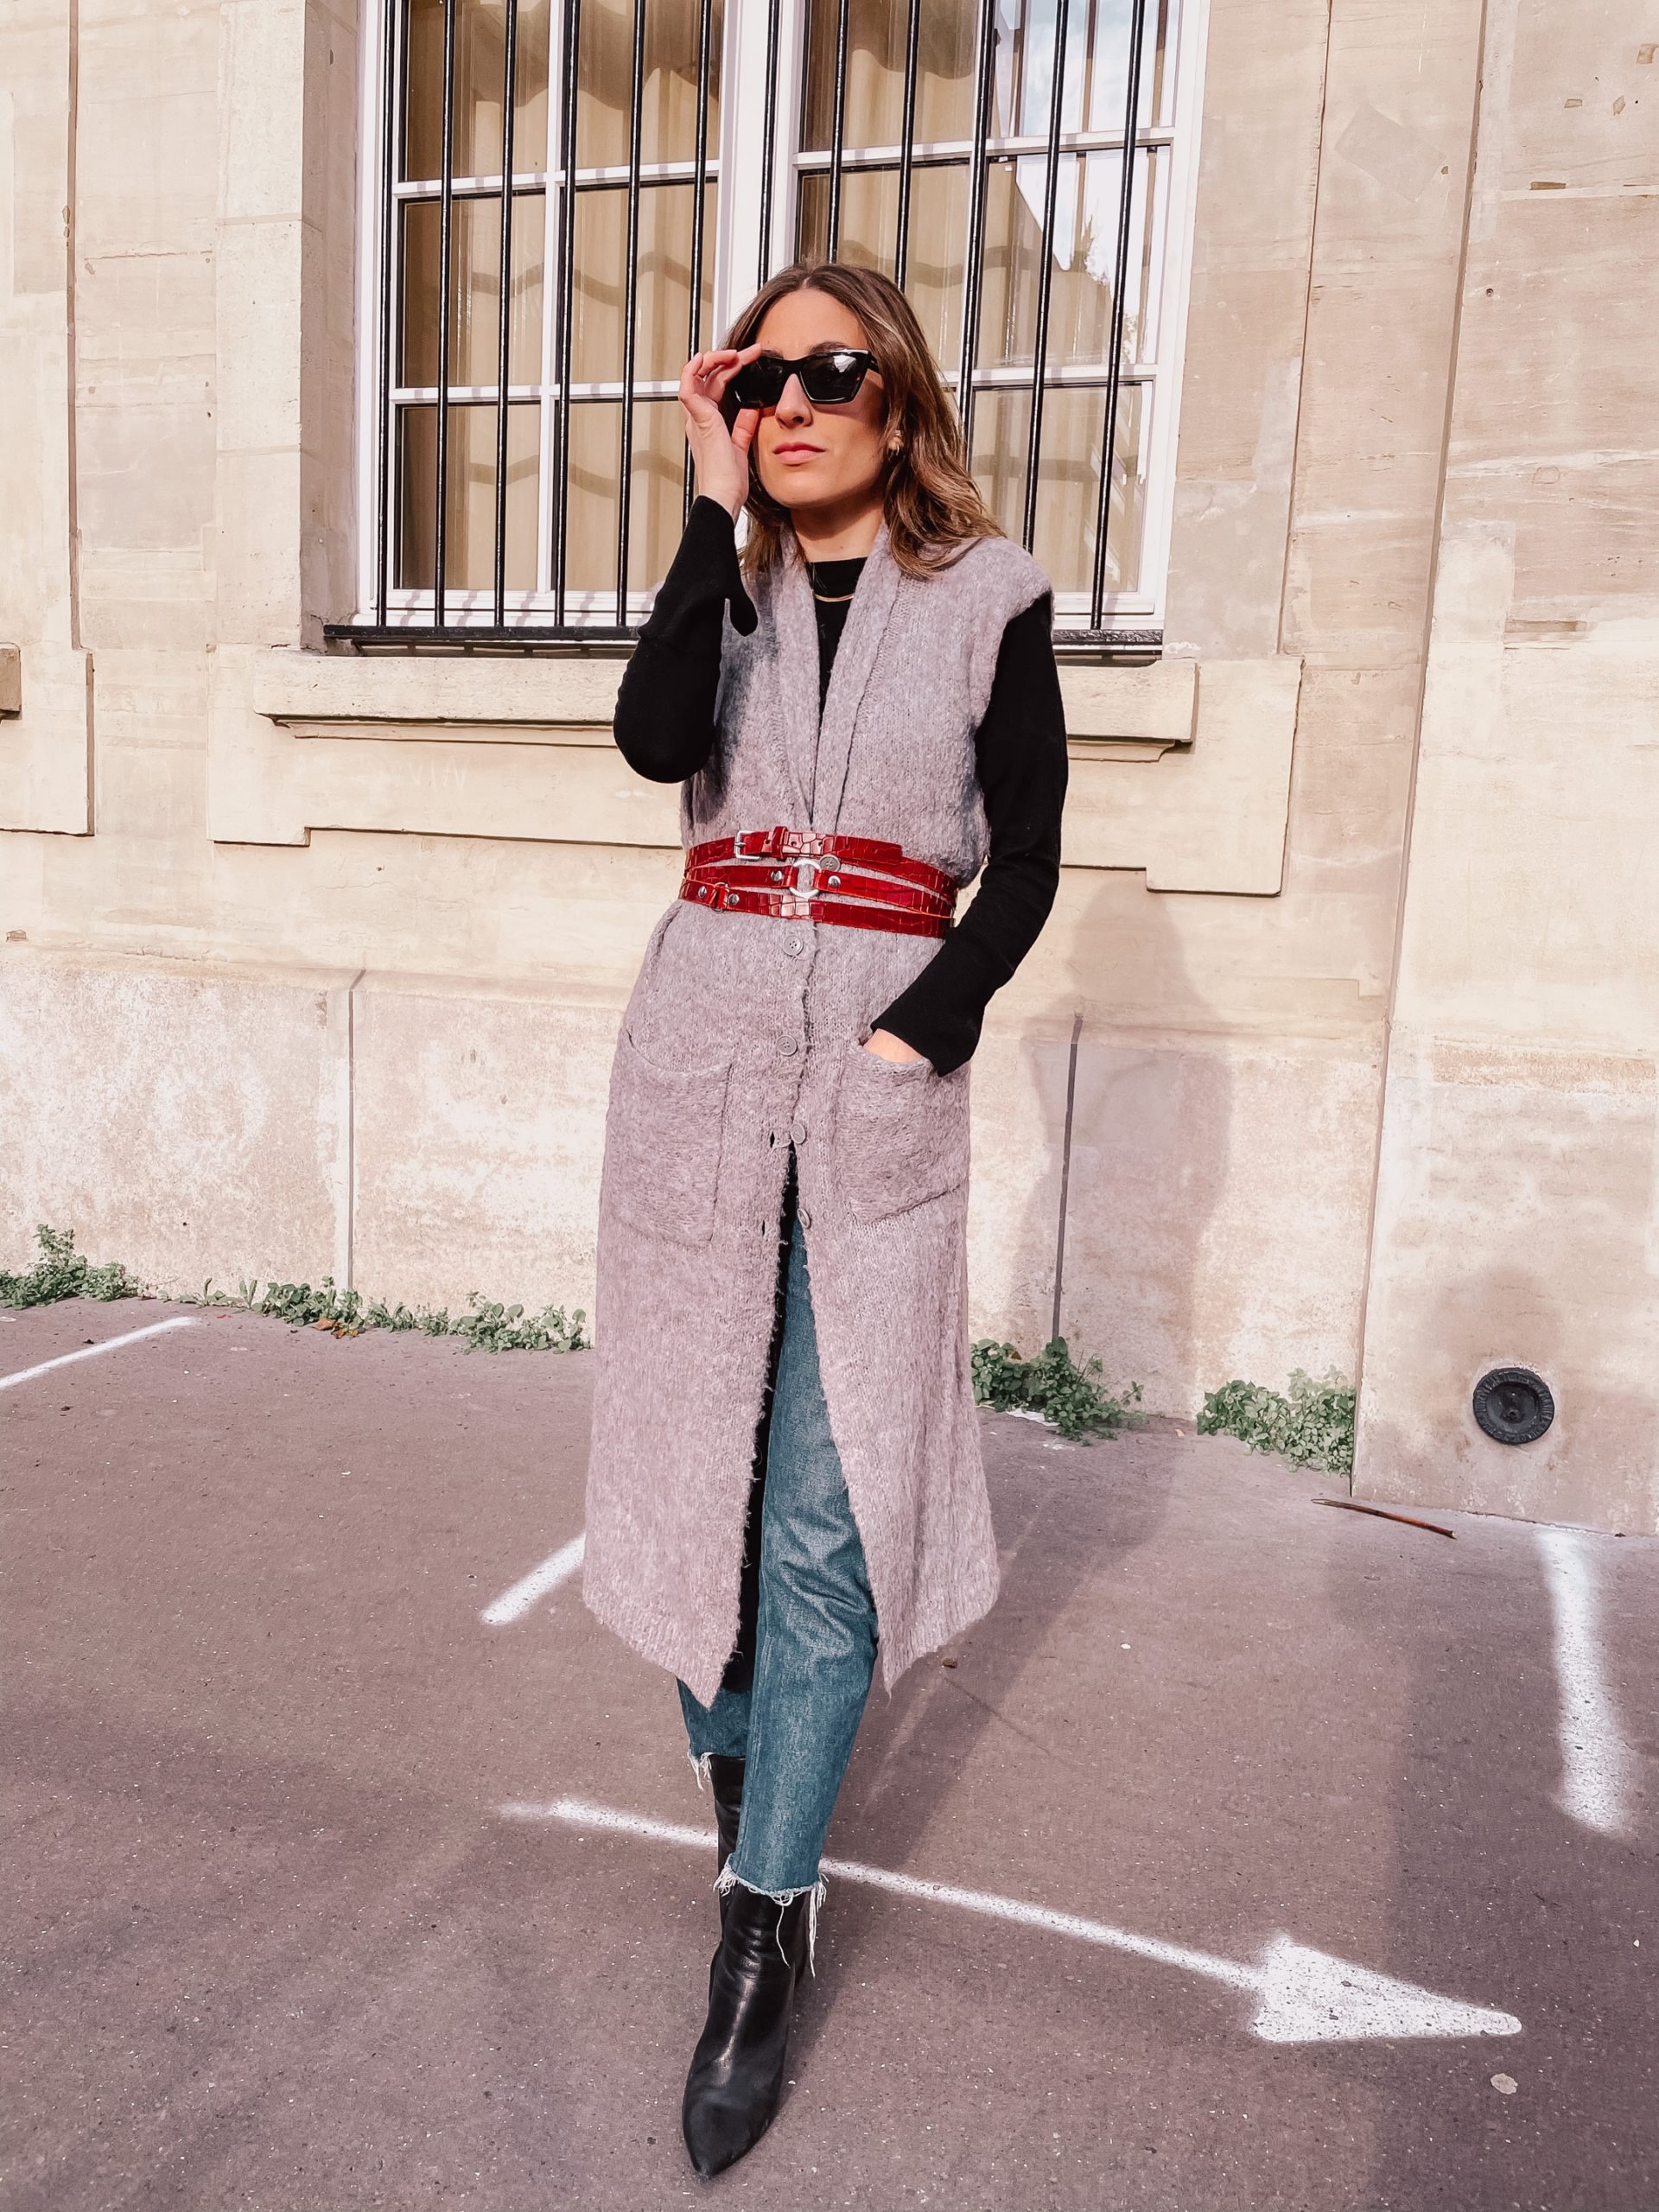 mode-parisienne-style-conseillere-image